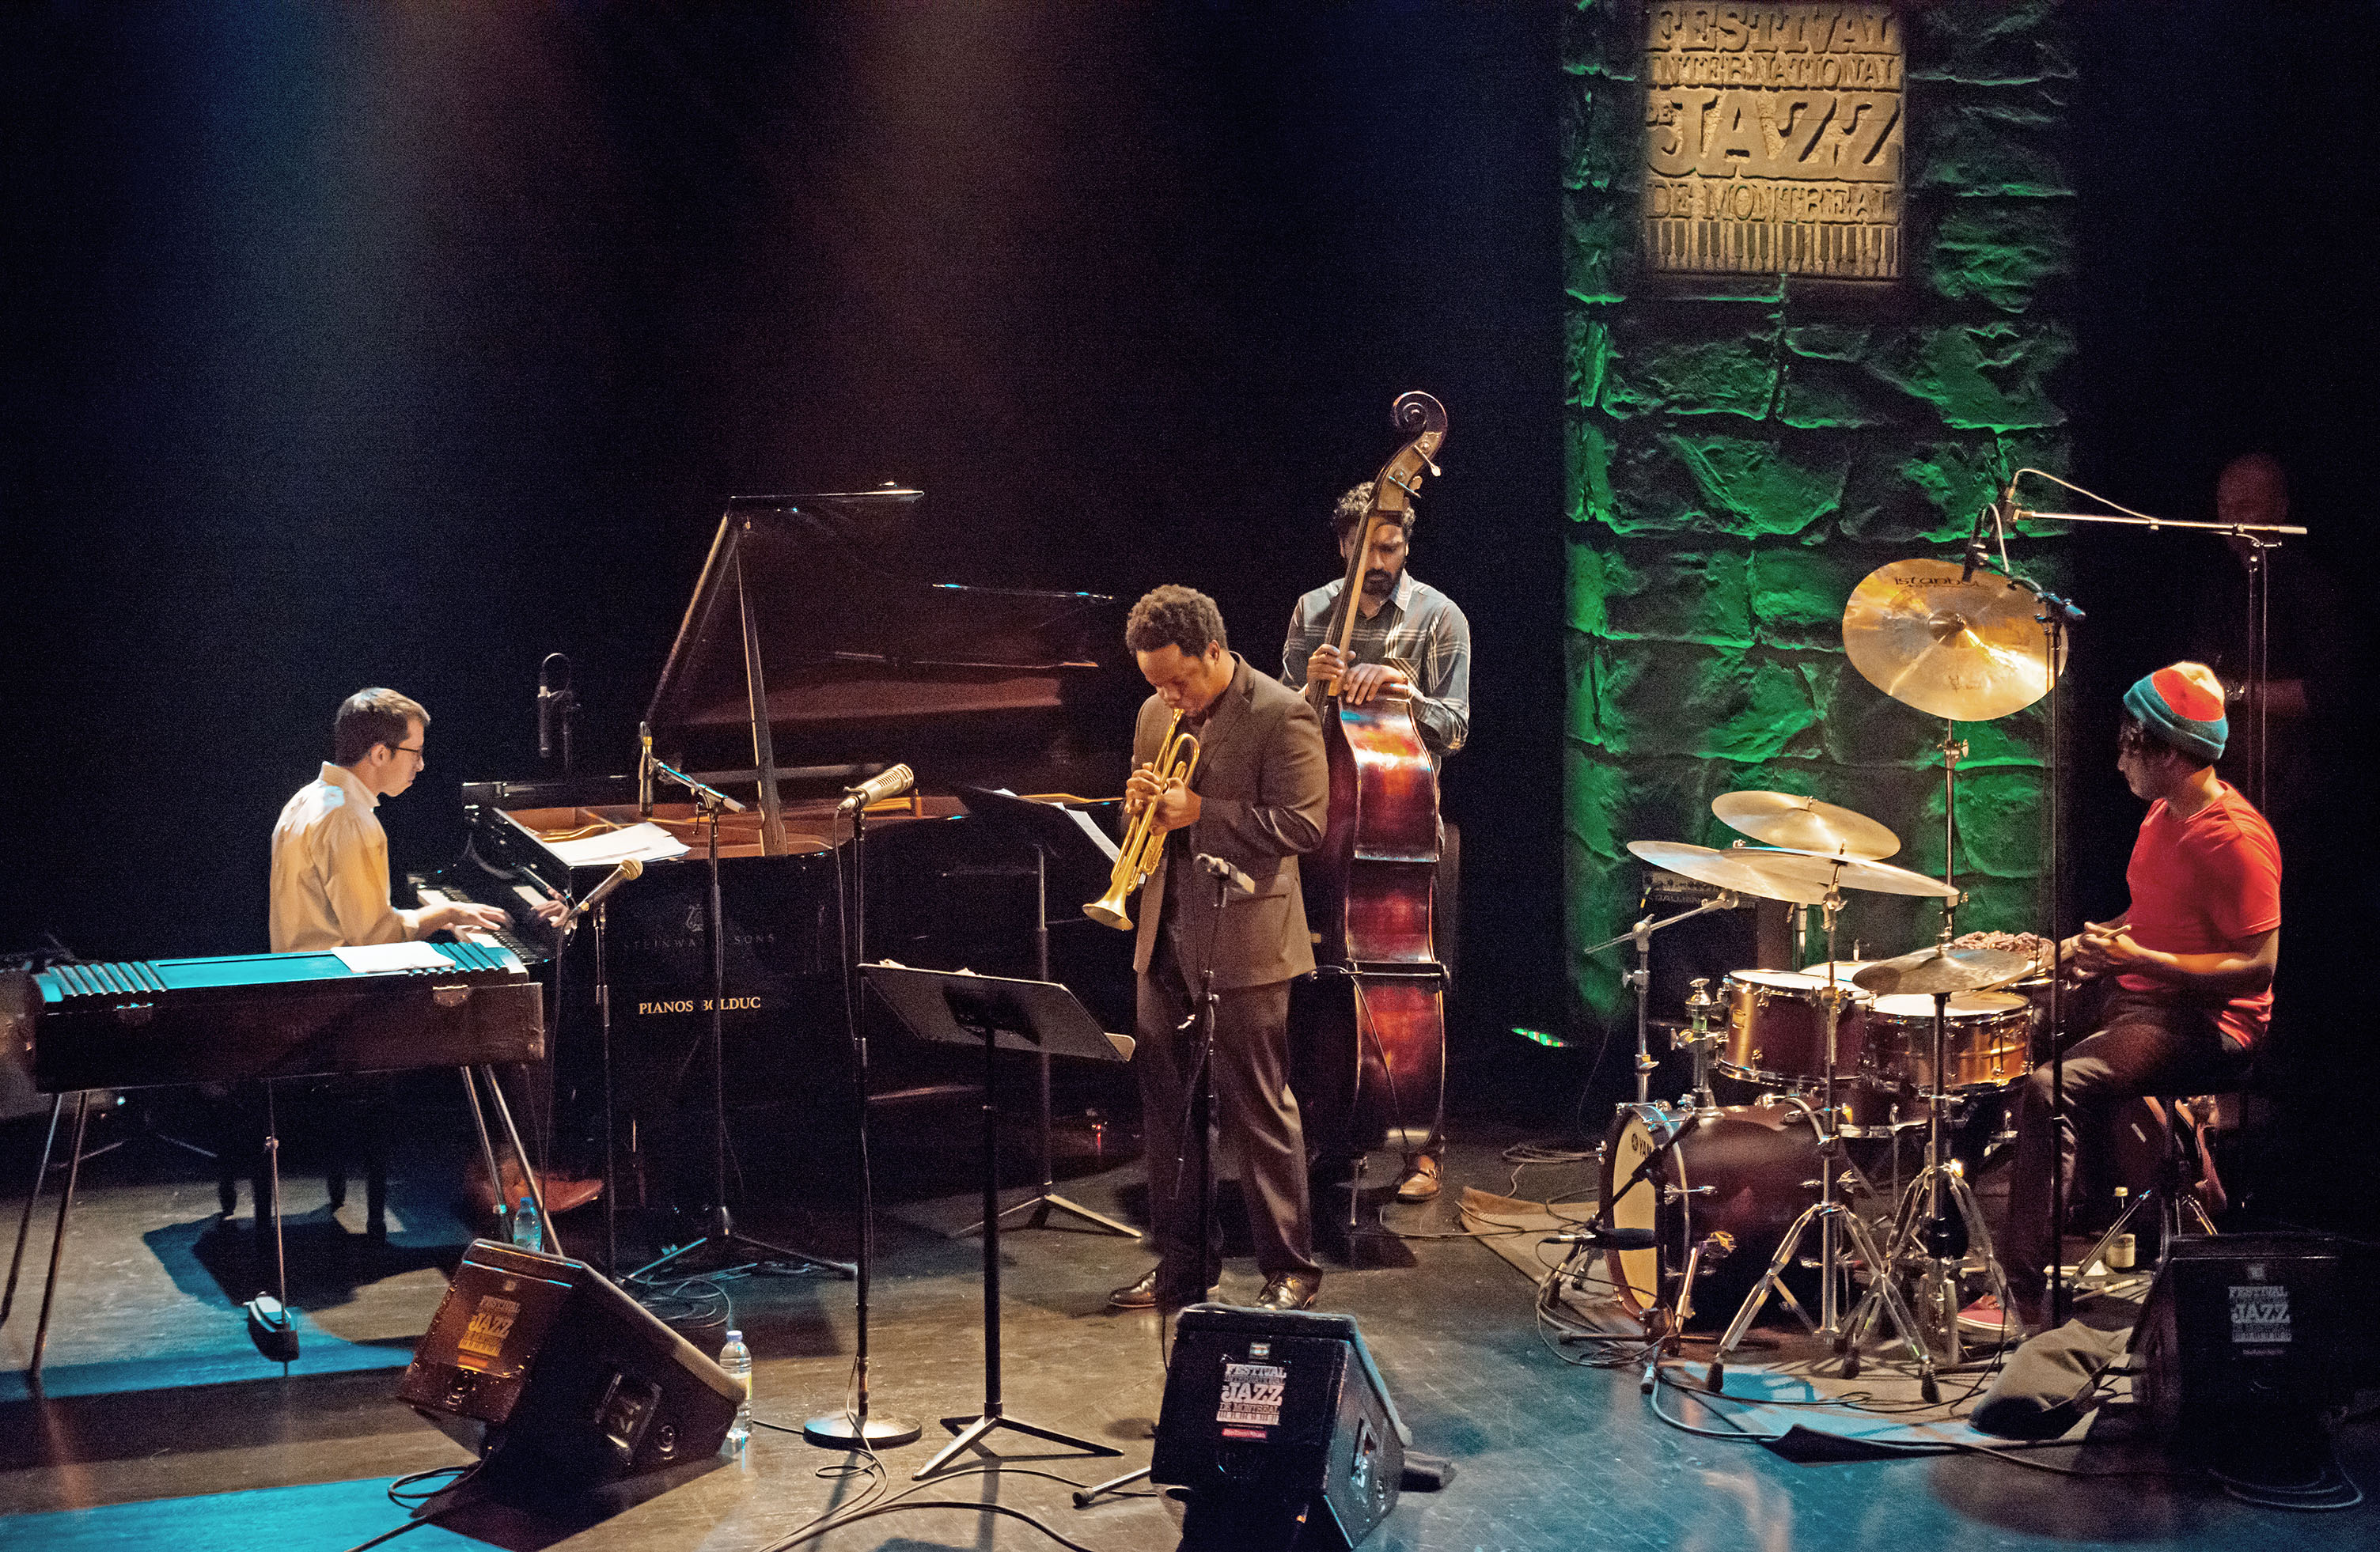 Ambrose Akinmusire Quintet at 2014 Festival International de Jazz de Montréal